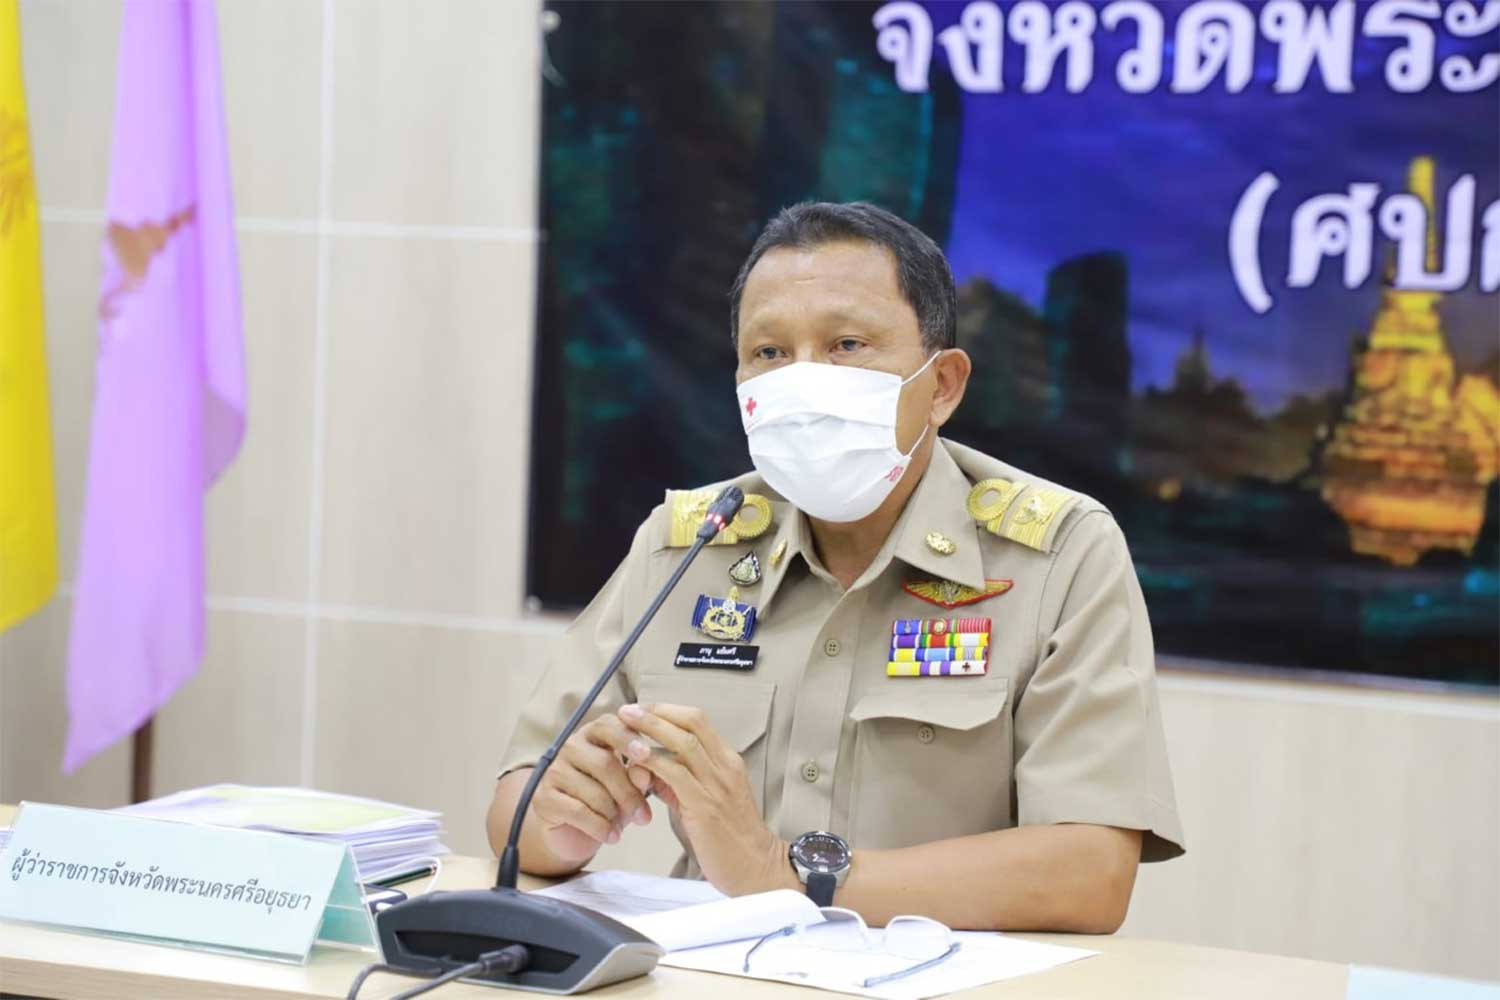 Ayutthaya governor Panu Yaemsri on Friday announes that spas and traditional Thai massage outlets will be alloed to resume busness from Jan 26 under conditions set by health authorities. (Photo: Sunthorn Pongpao)